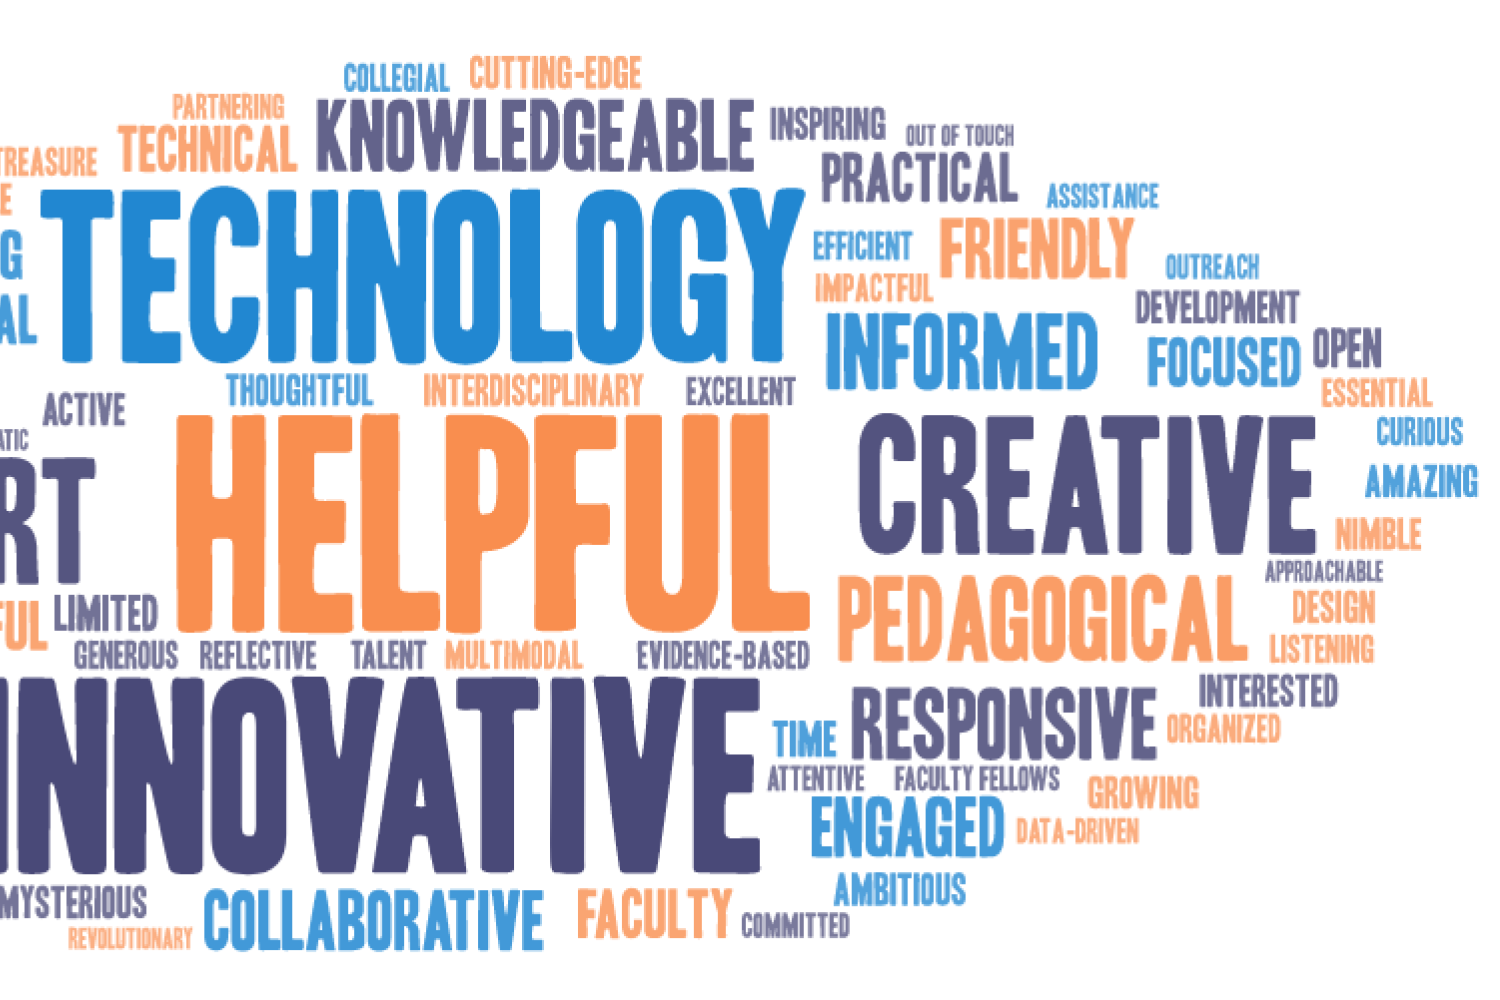 Word cloud of adjectives that describe ASSETT. Most frequent responses include technology, helpful, innovative, creative, support, and knowledgeable.